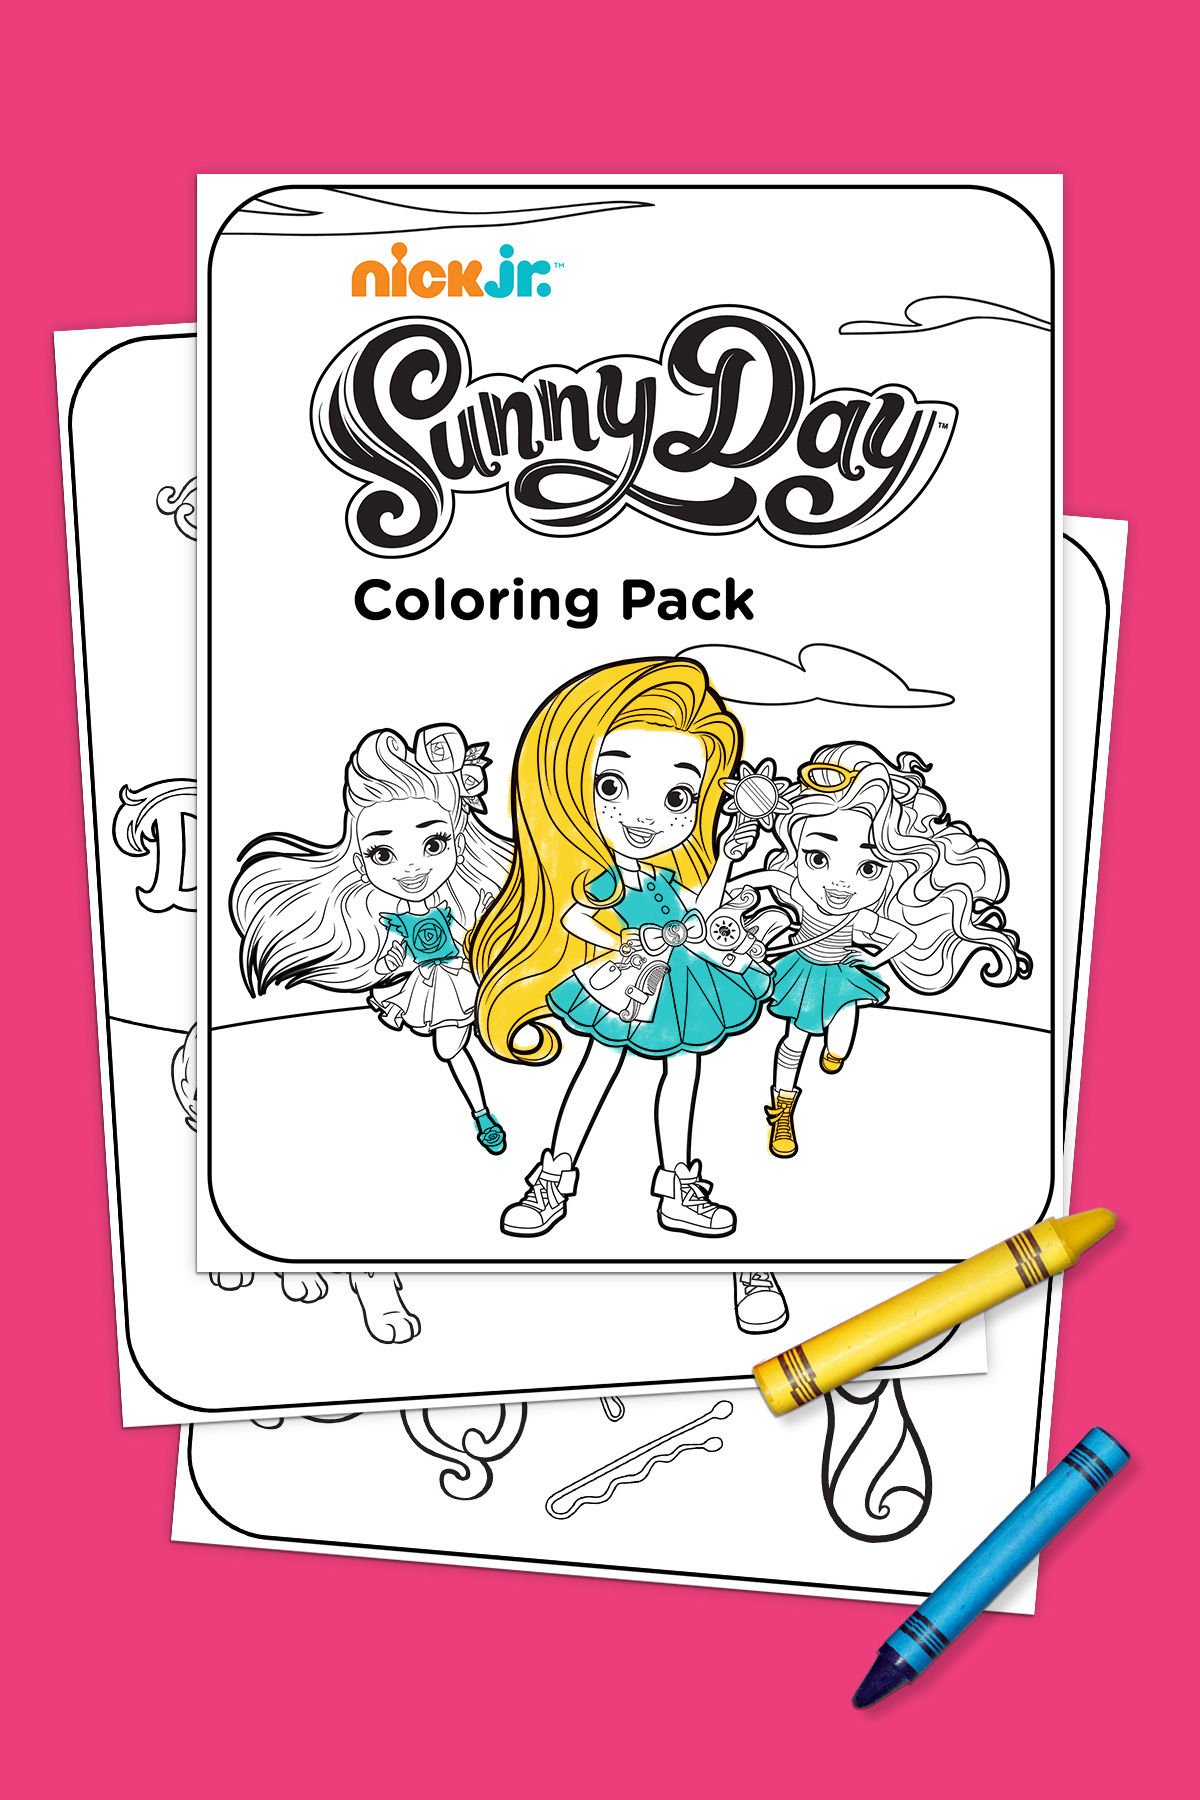 Printable coloring pages nick jr - Sunny Day Coloring Pack Preschool Printables